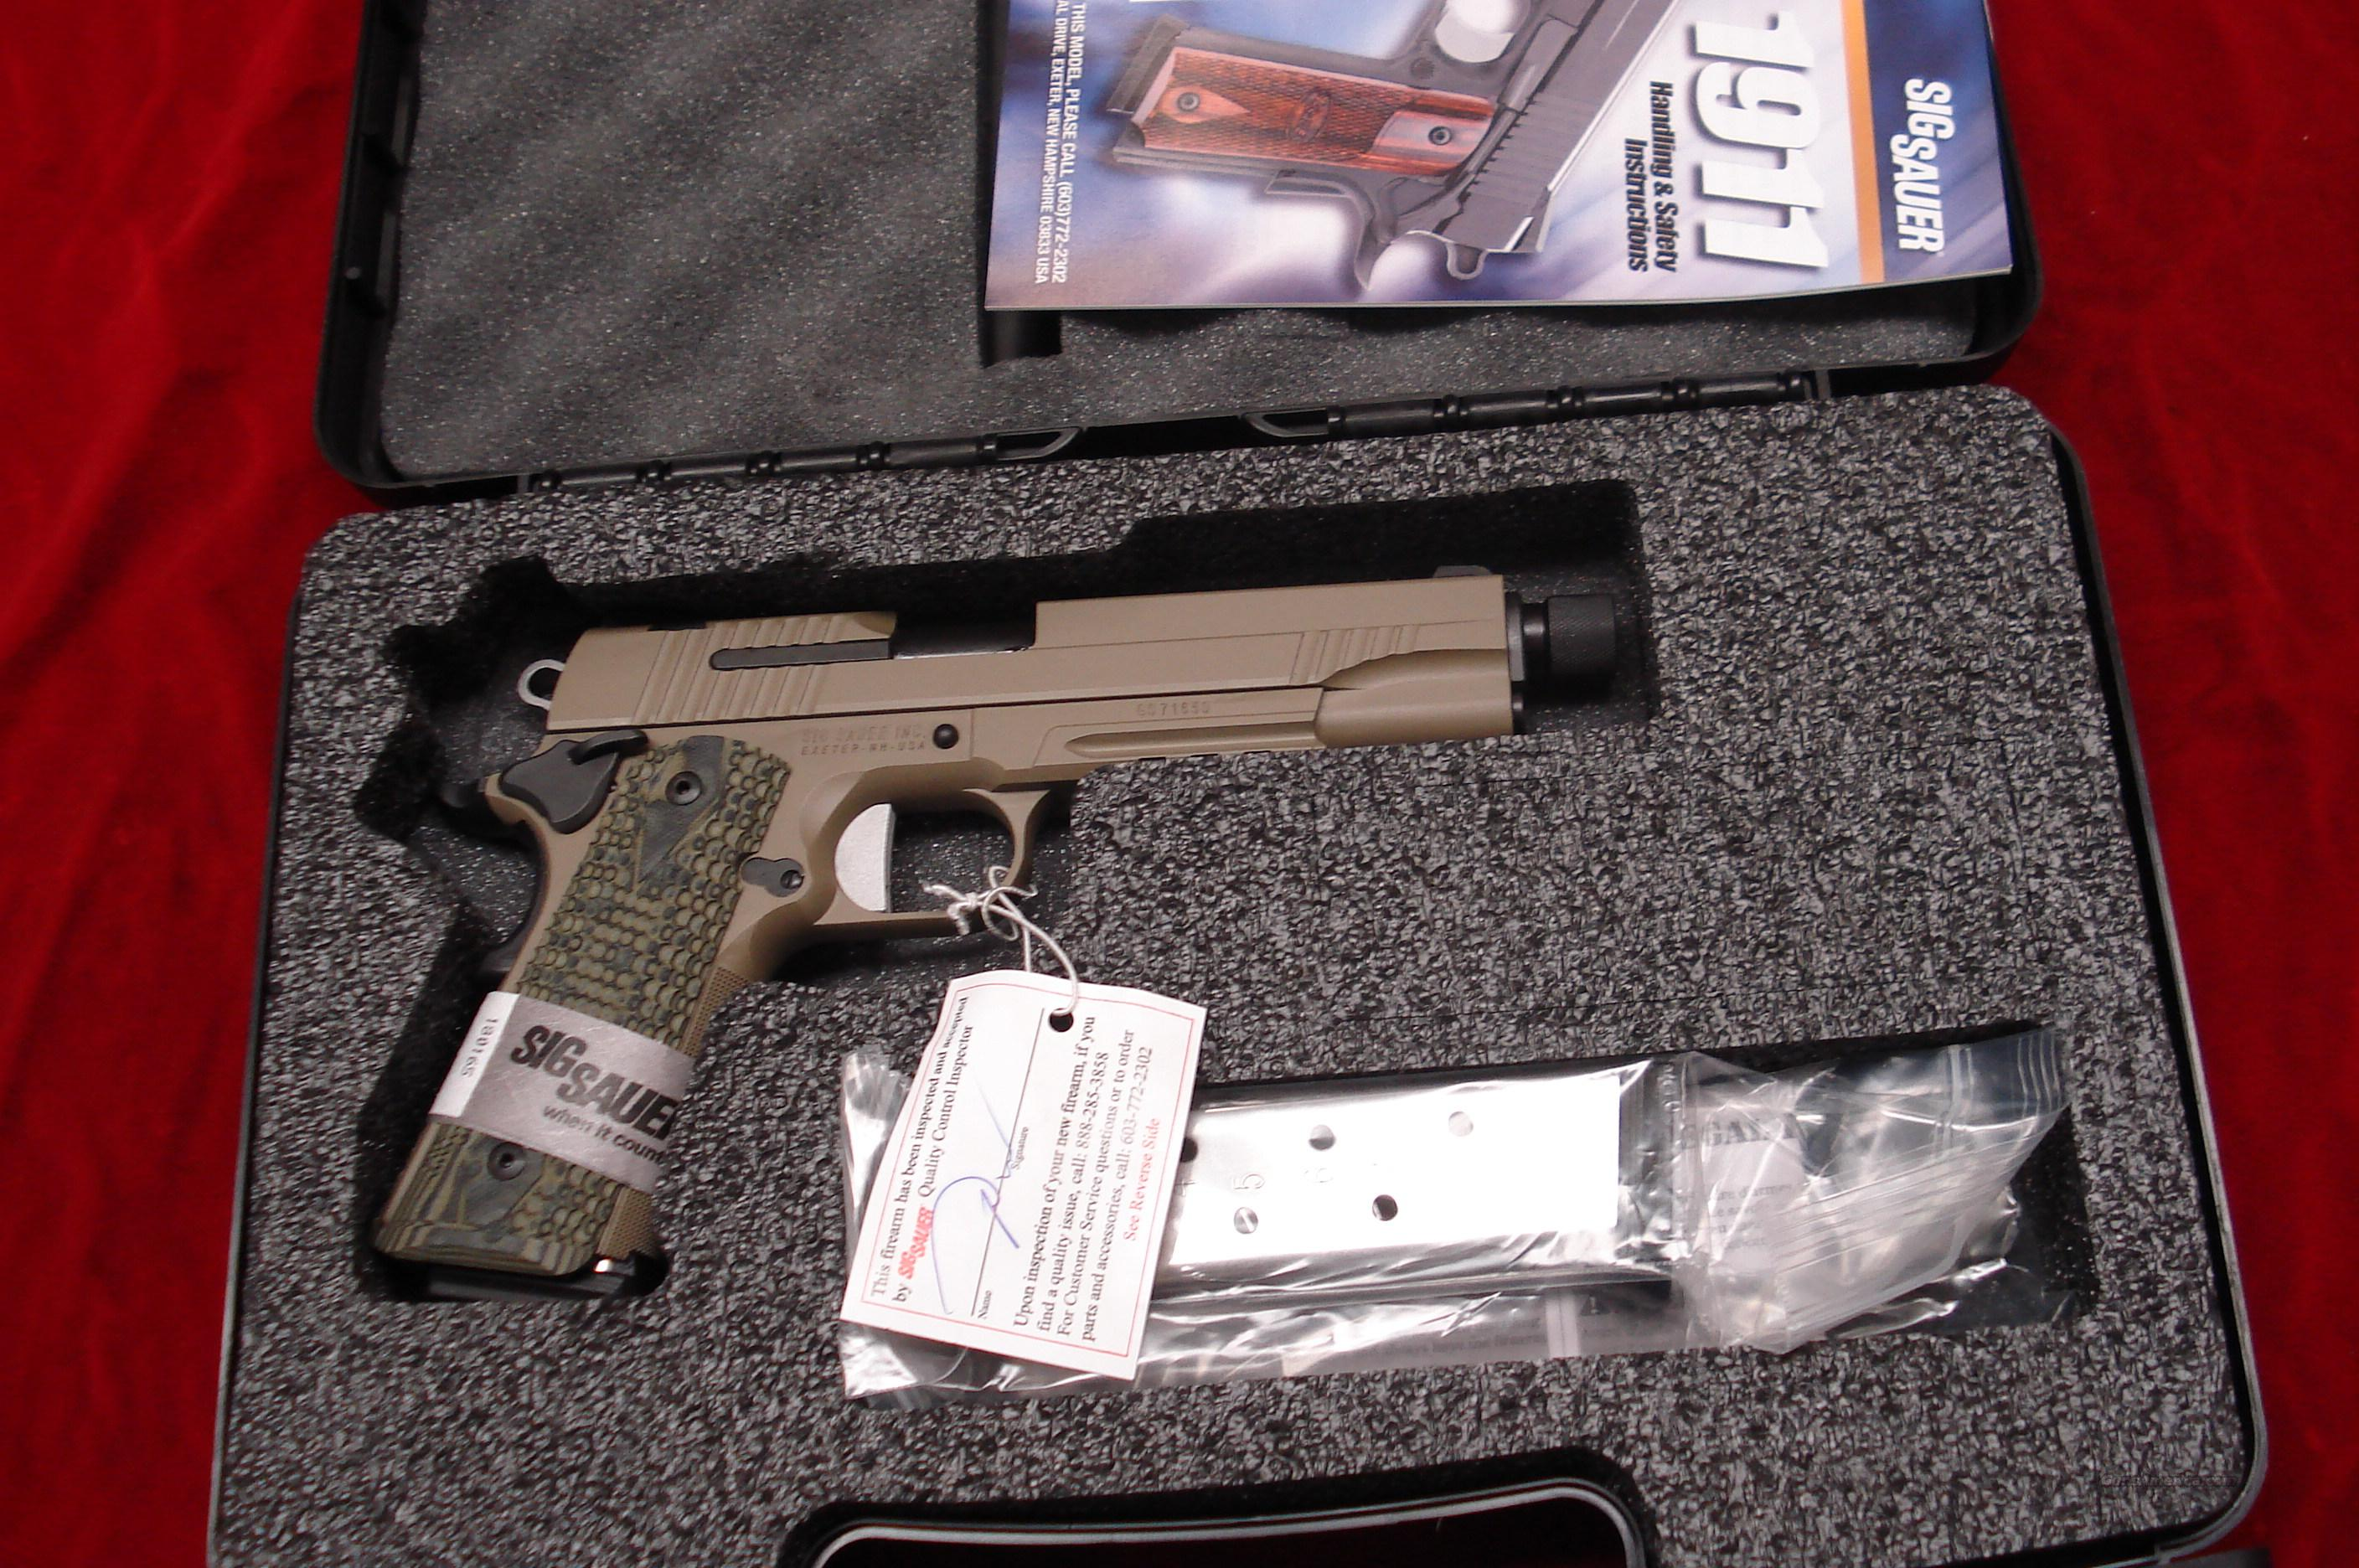 SIG SAUER 1911 SCORPION FLAT DARK EARTH THREADED BARREL WITH TAC RAIL AND NIGHT SIGHTS NEW  Guns > Pistols > Sig - Sauer/Sigarms Pistols > 1911